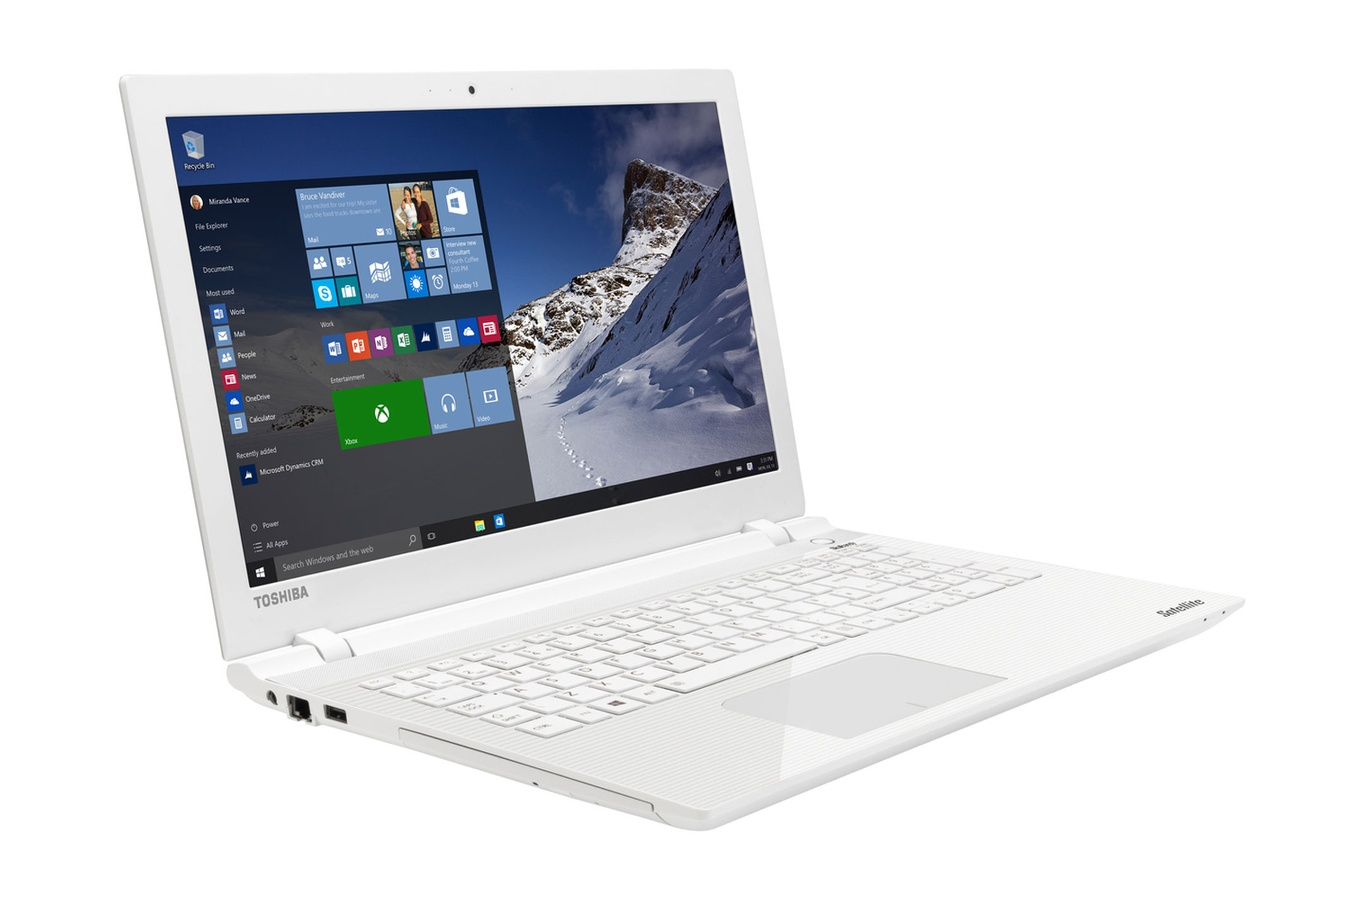 toshiba bluetooth driver windows 7 64 bit